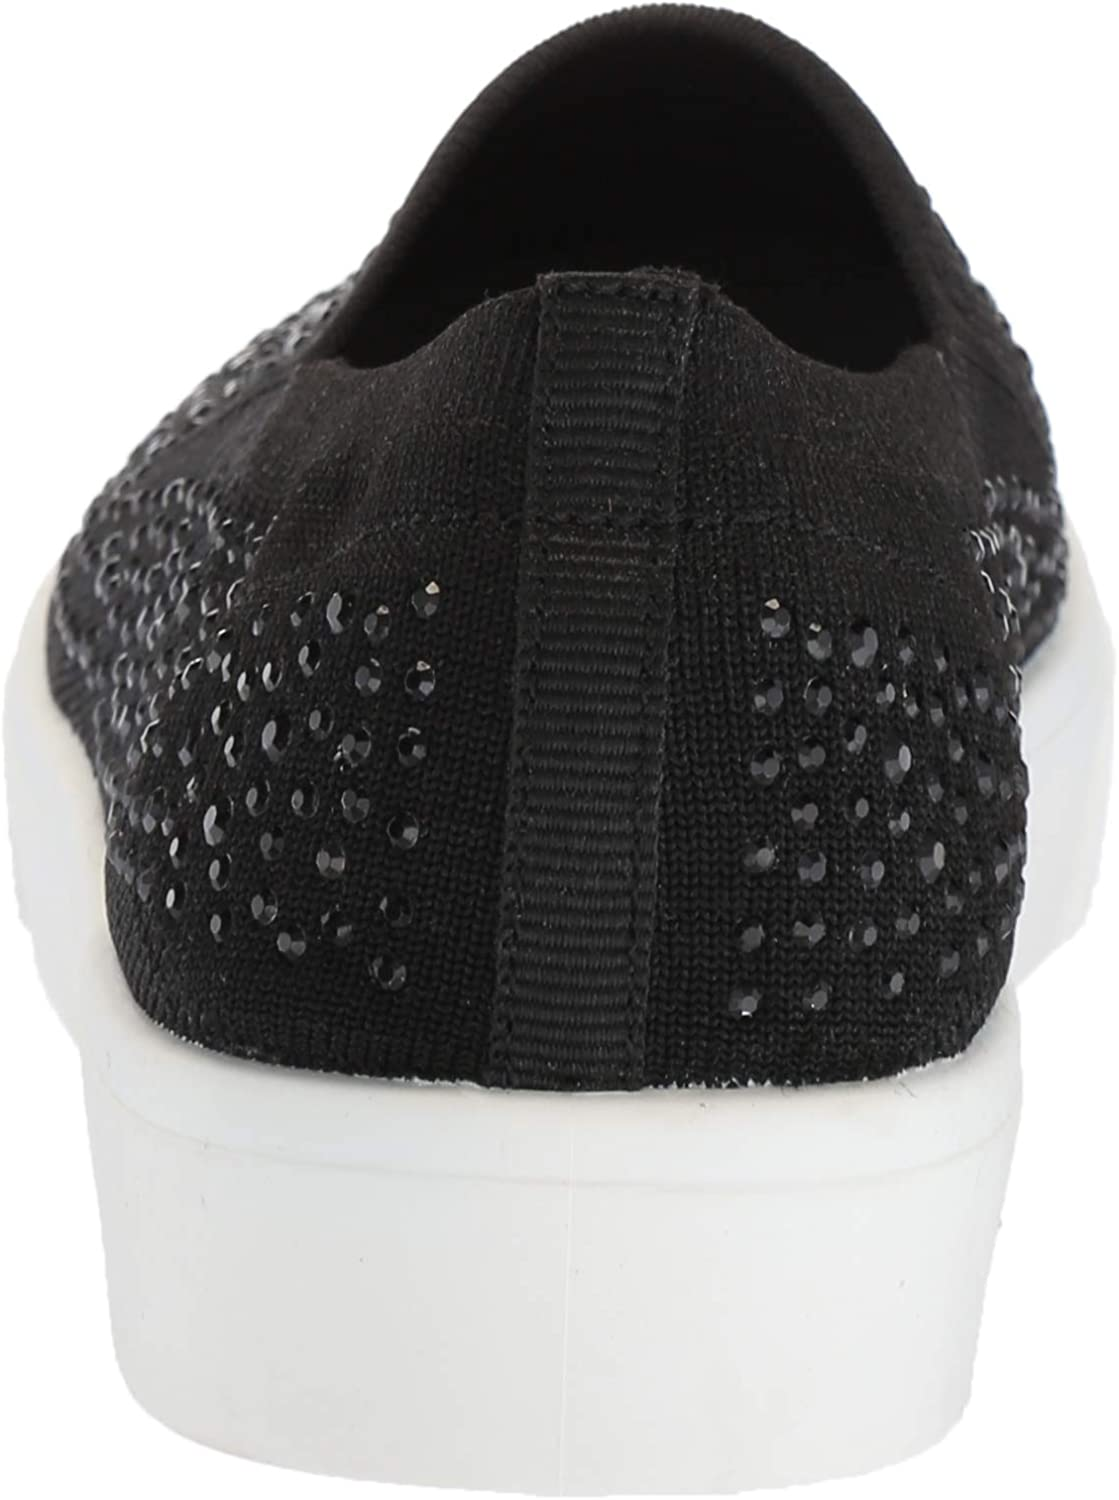 Skechers Womens Poppy Studded Affair Slip On Casual Shoes ghEuO